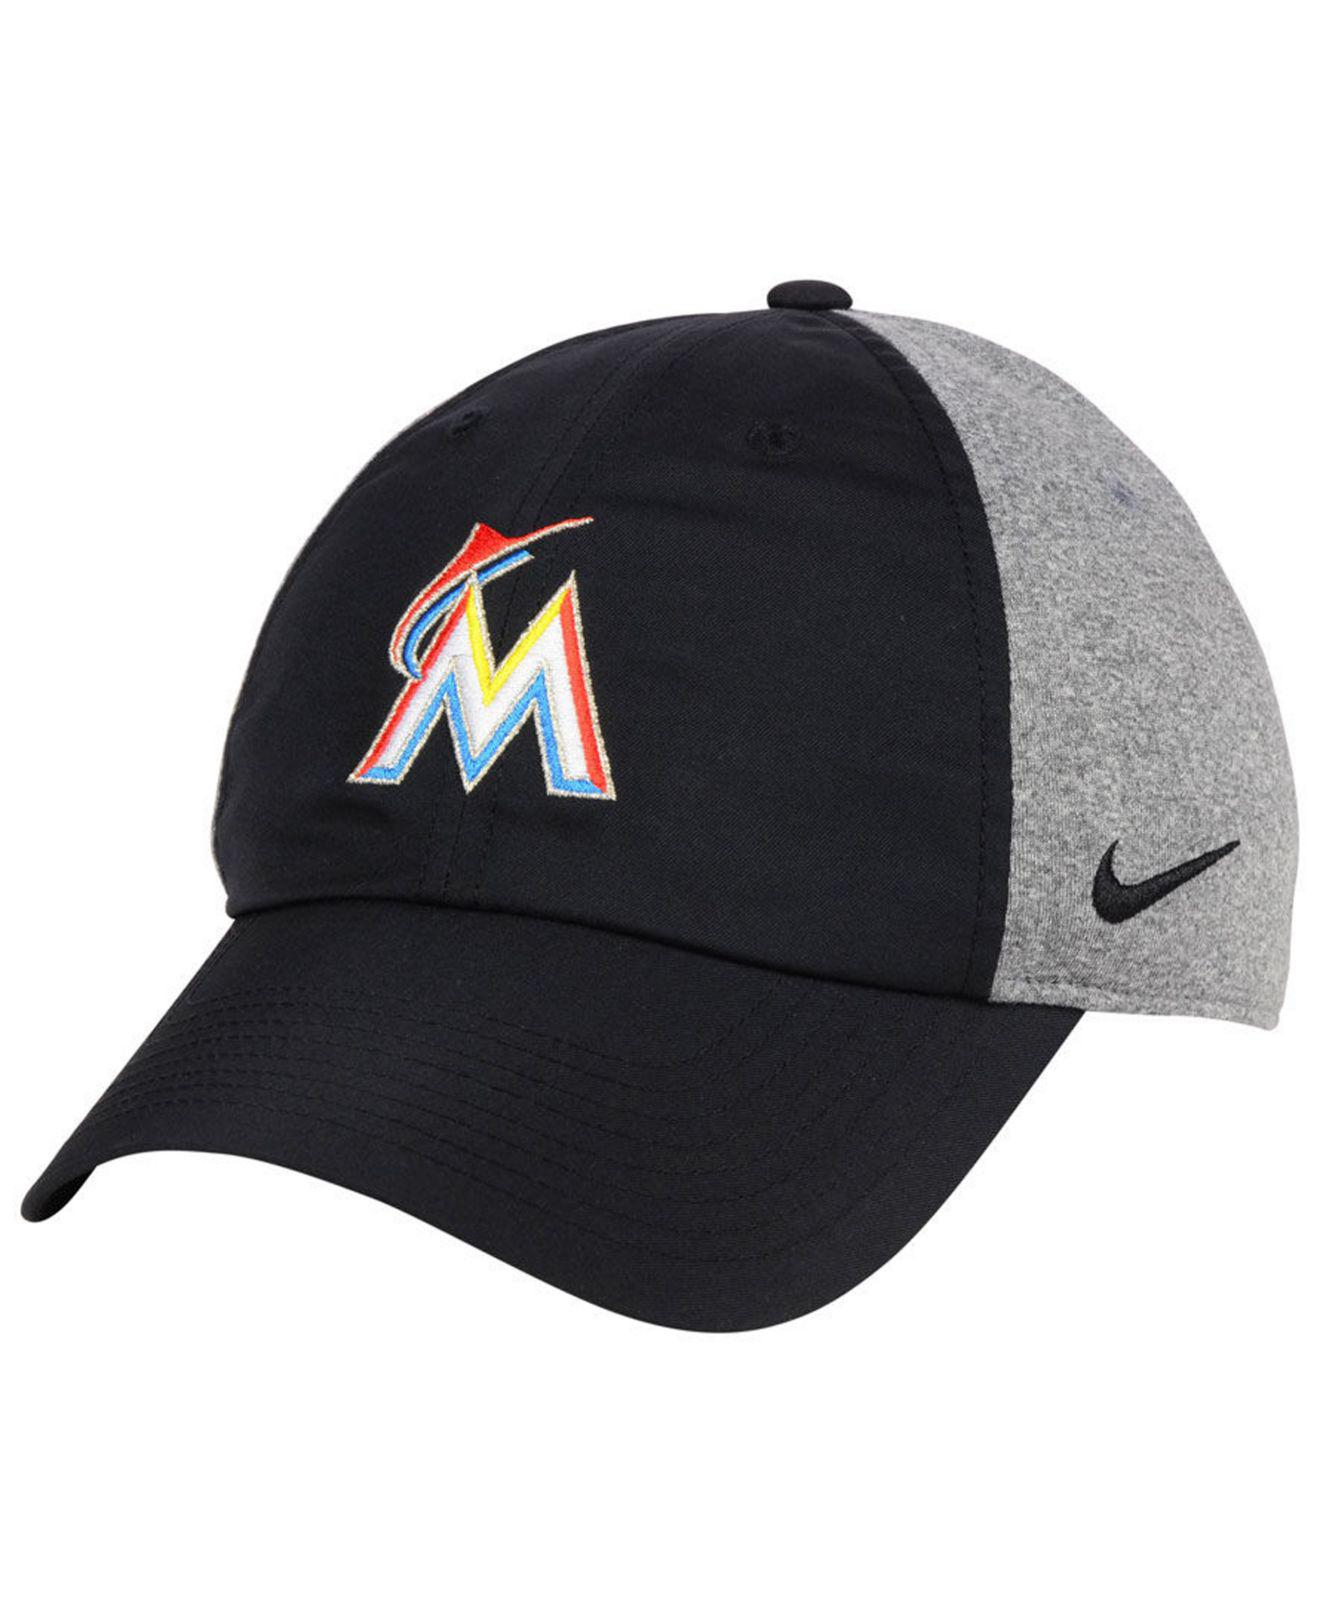 best service cccff 78eda ... reduced lyst nike miami marlins new day legend cap in black for men  b2a8c 69450